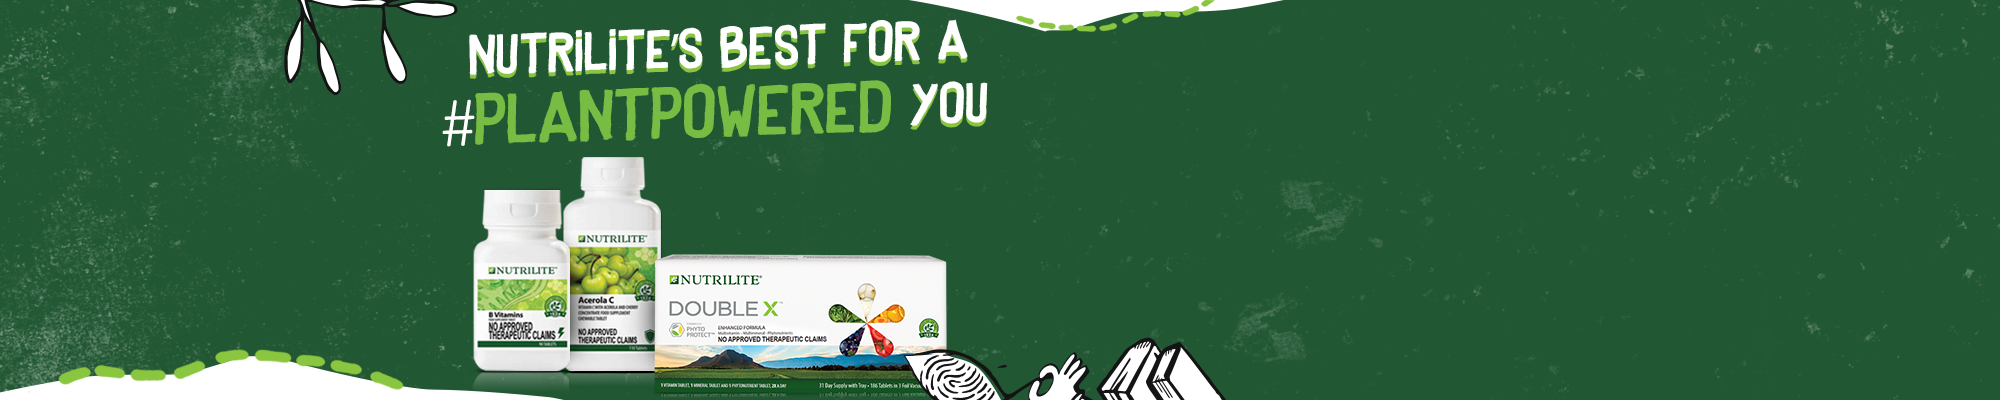 Amway--I_am_Plant_Powered-website_banner--02262021-3[1].png